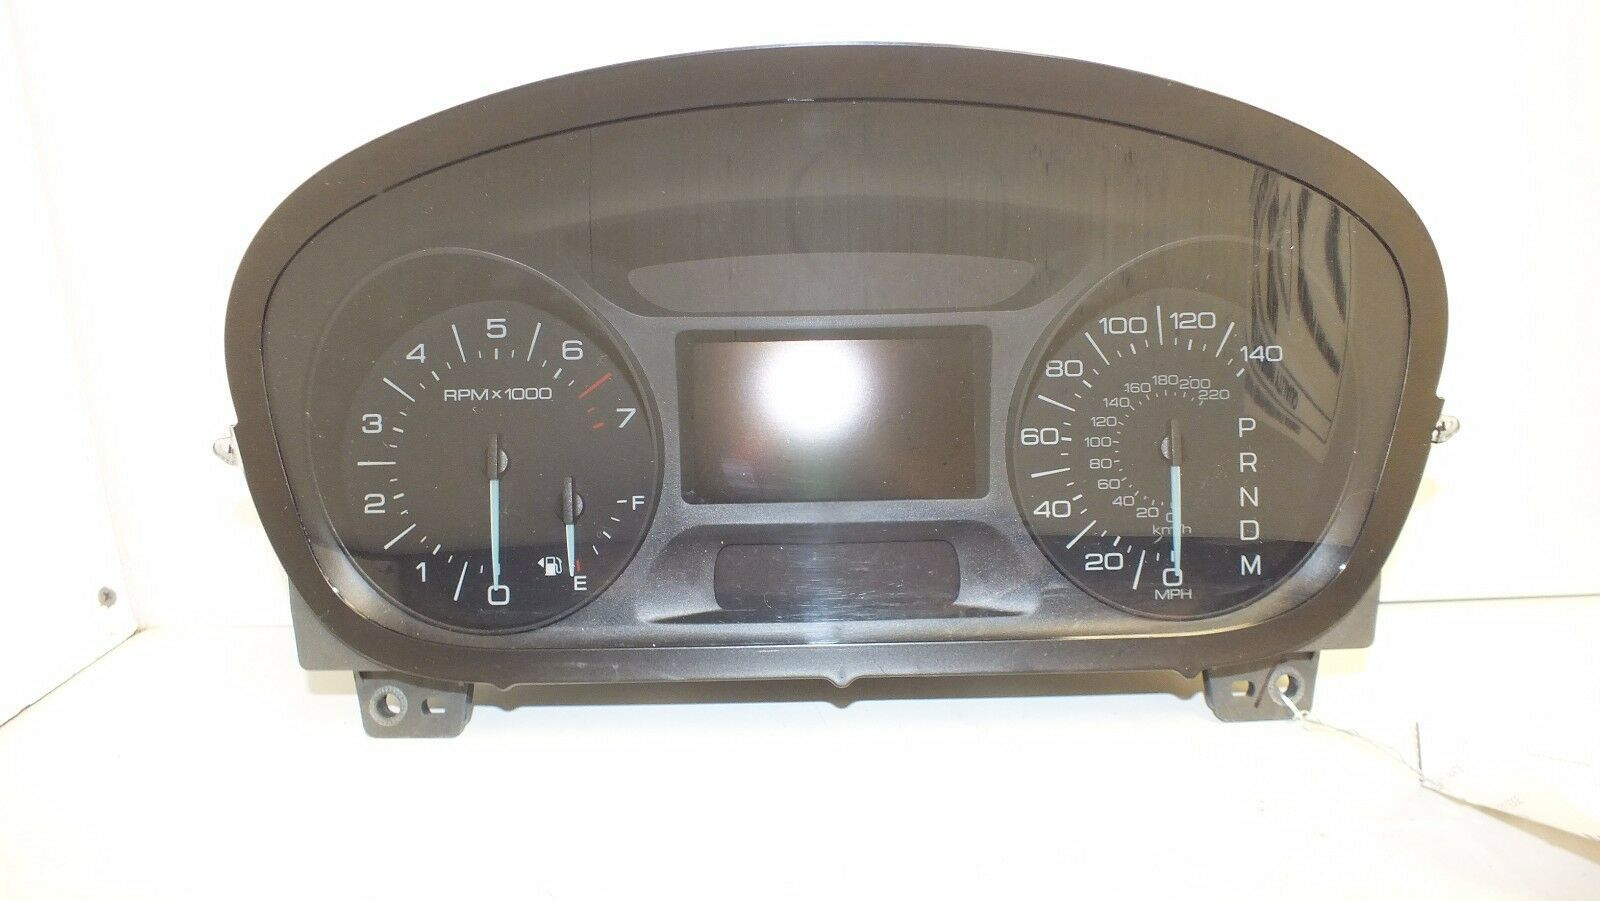 Primary image for 12 13 2012 2013 FORD EDGE SEL 3.5L INSTRUMENT CLUSTER CT4T-10849-EG (51k) #1608D